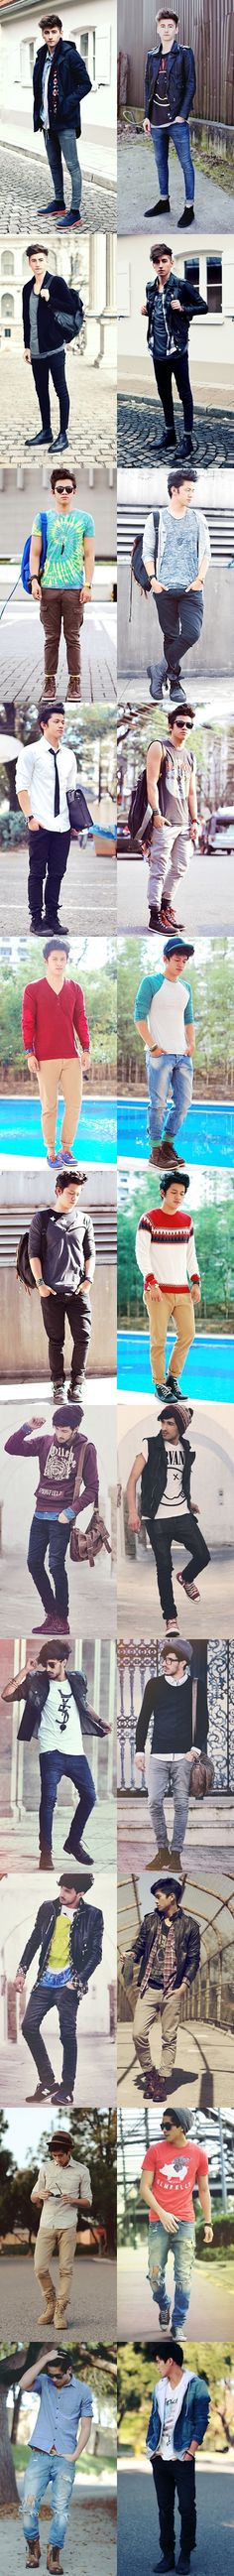 Style for boys/ Fashion for boys/ Boys' Style